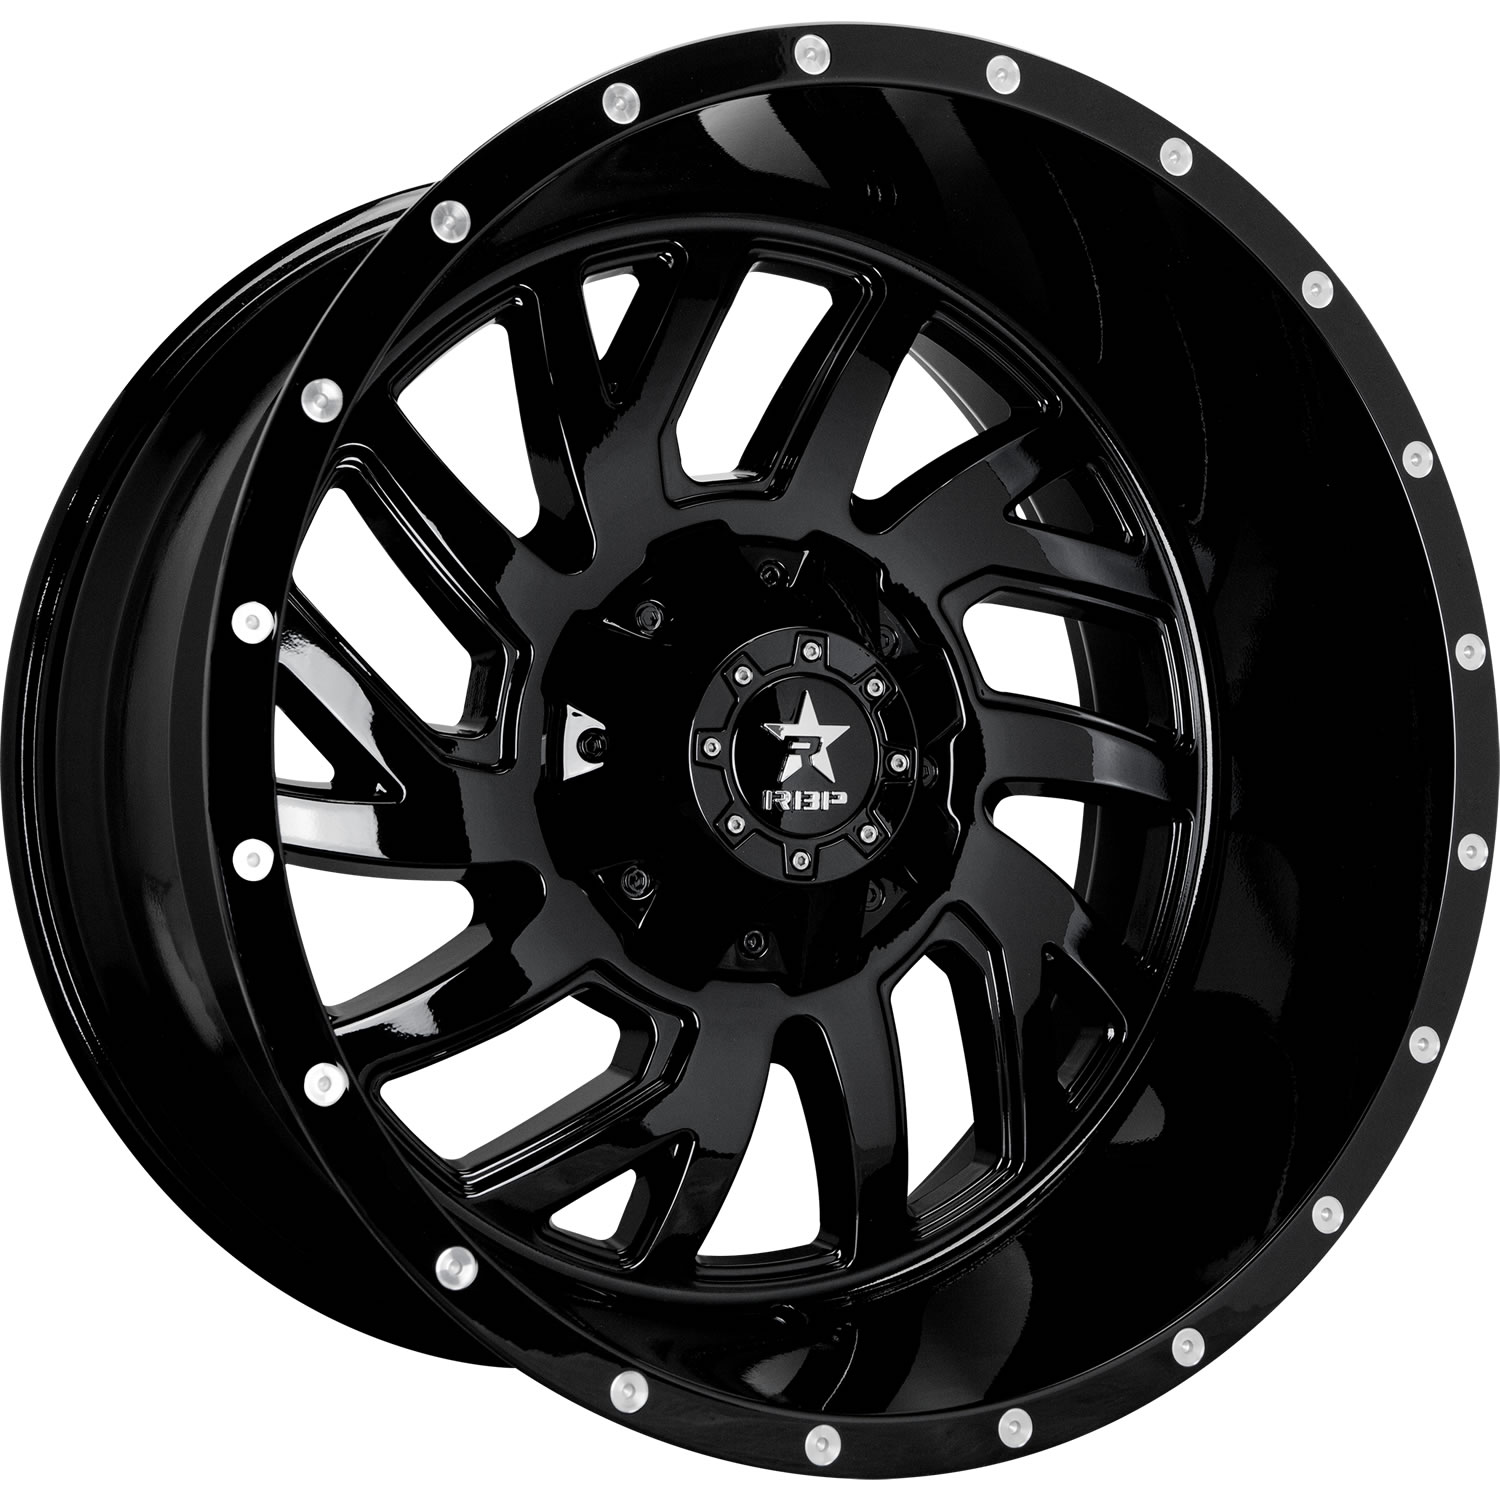 RBP 65R 22x14  76mm | 65R 2214 50 76FB